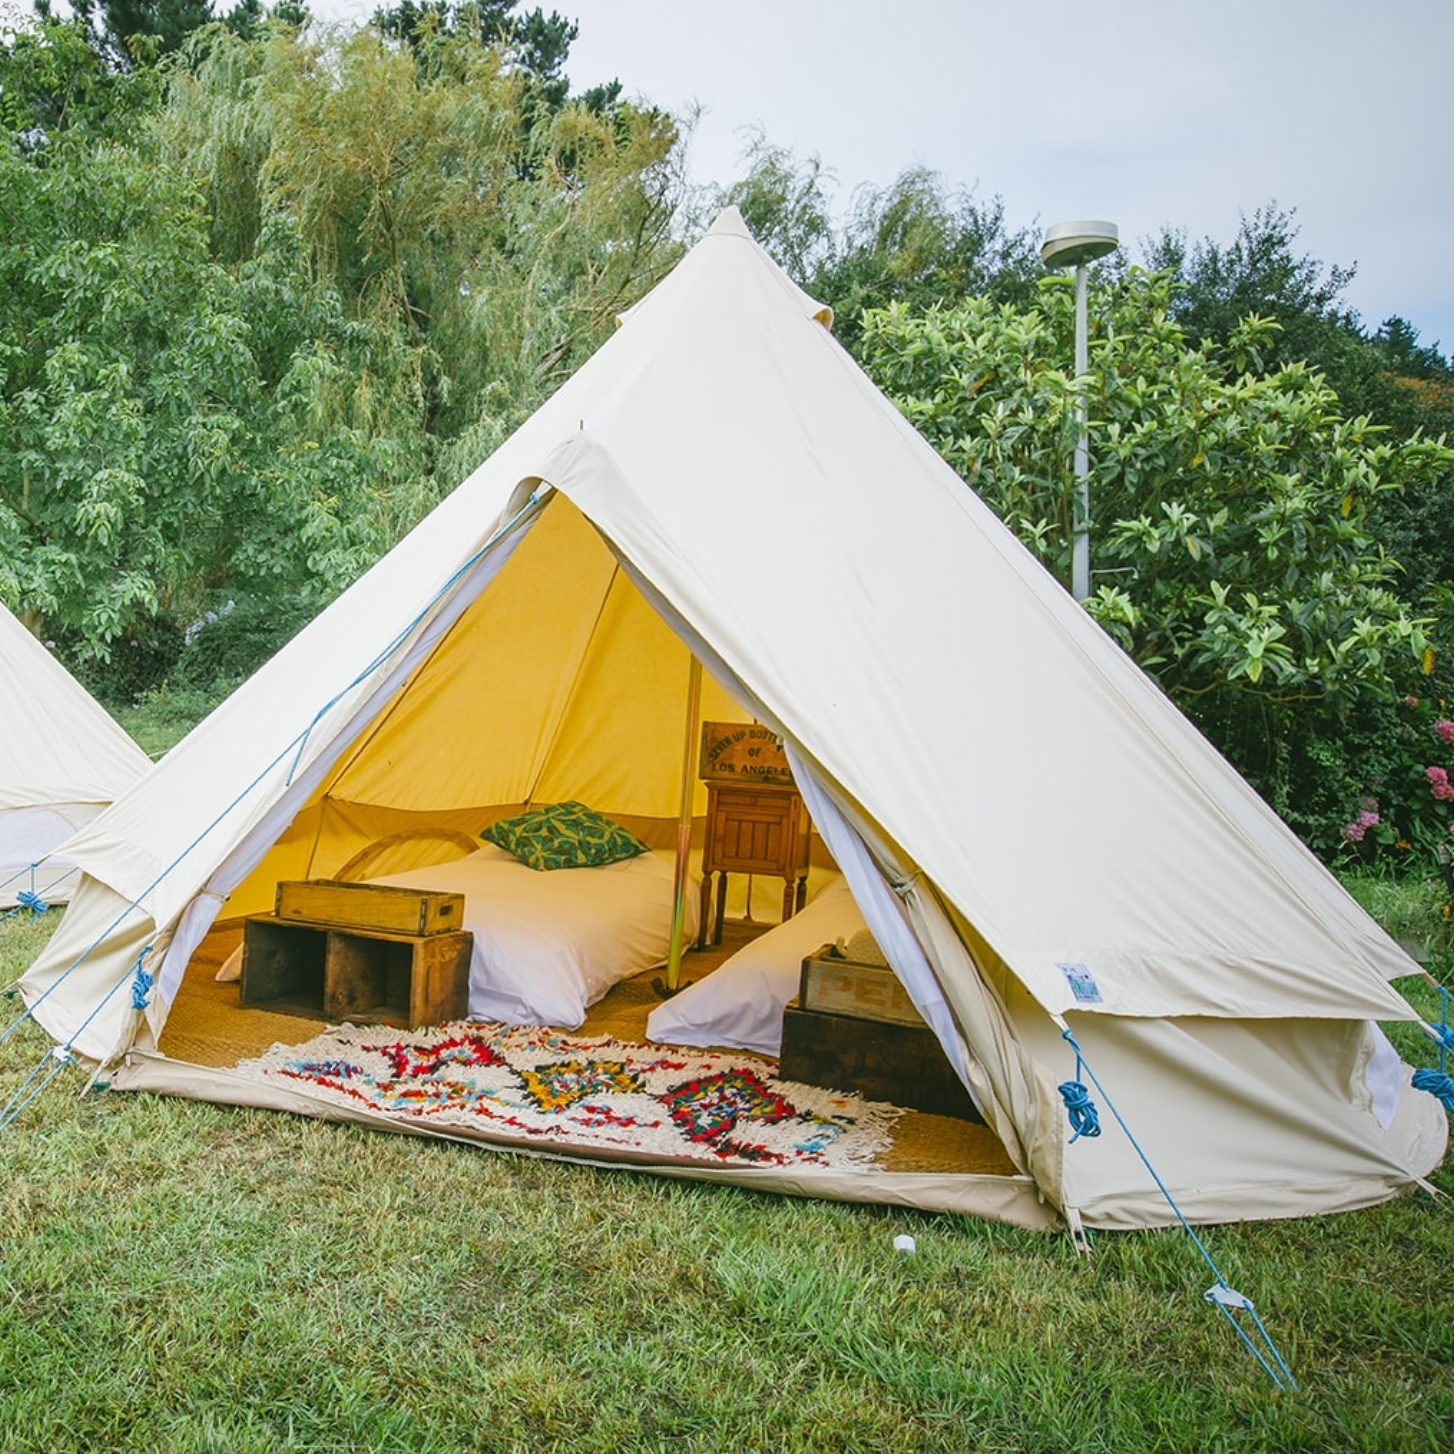 Snazzy_Camp_Biarritz_glamping_paysbasque_holidays (54).jpg